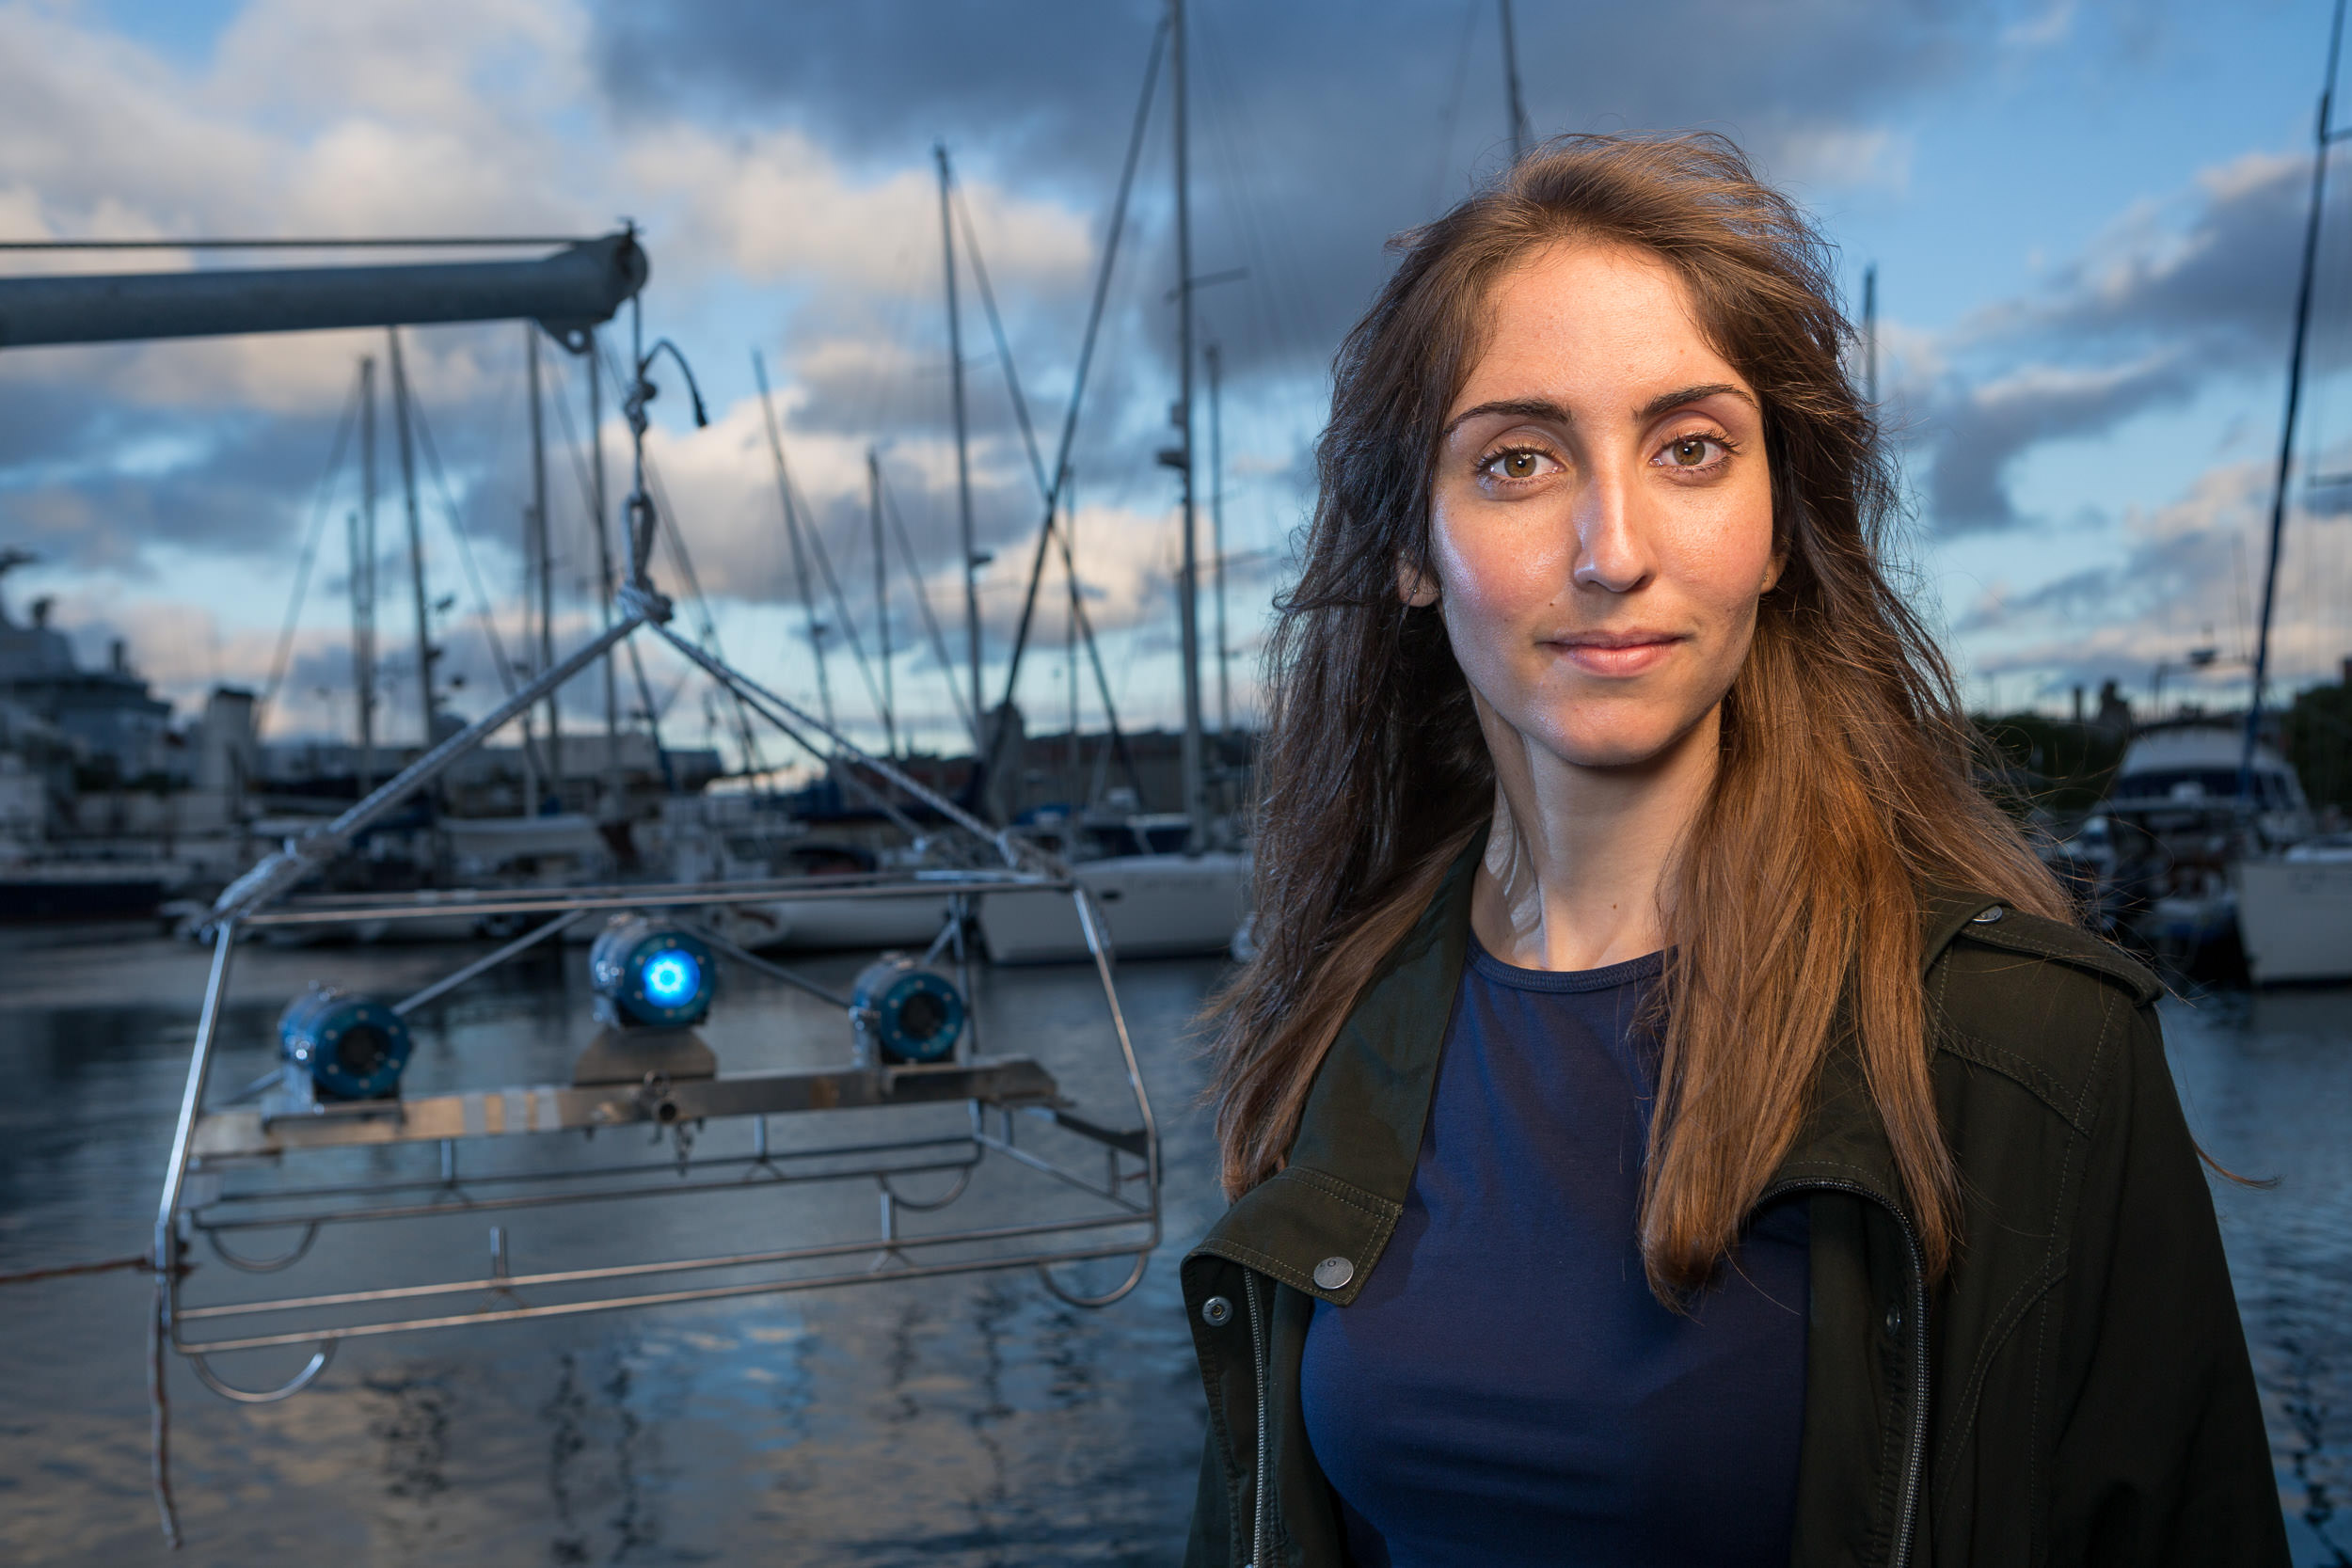 Conservation biologist Lauren de Vos uses baited remote underwater video systems to better inform fisheries management in South Africa